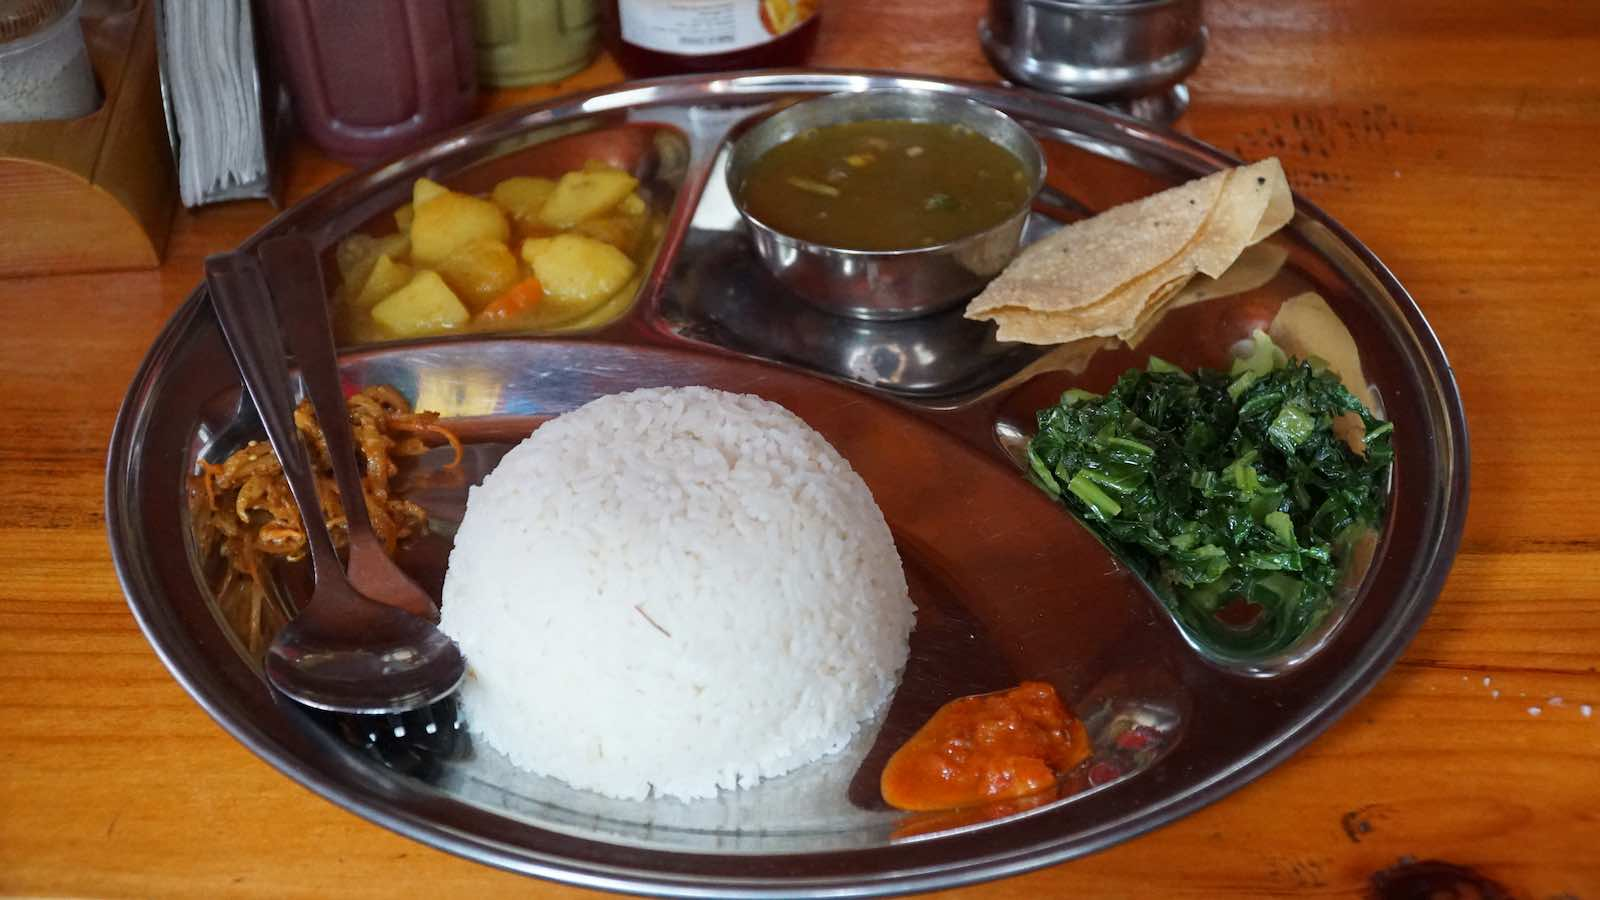 My most consumed meal in Kathmandu and later on in the mountains: Dal Bhat. The best part was that you get free refills of most of the sides, great when you're hungry.